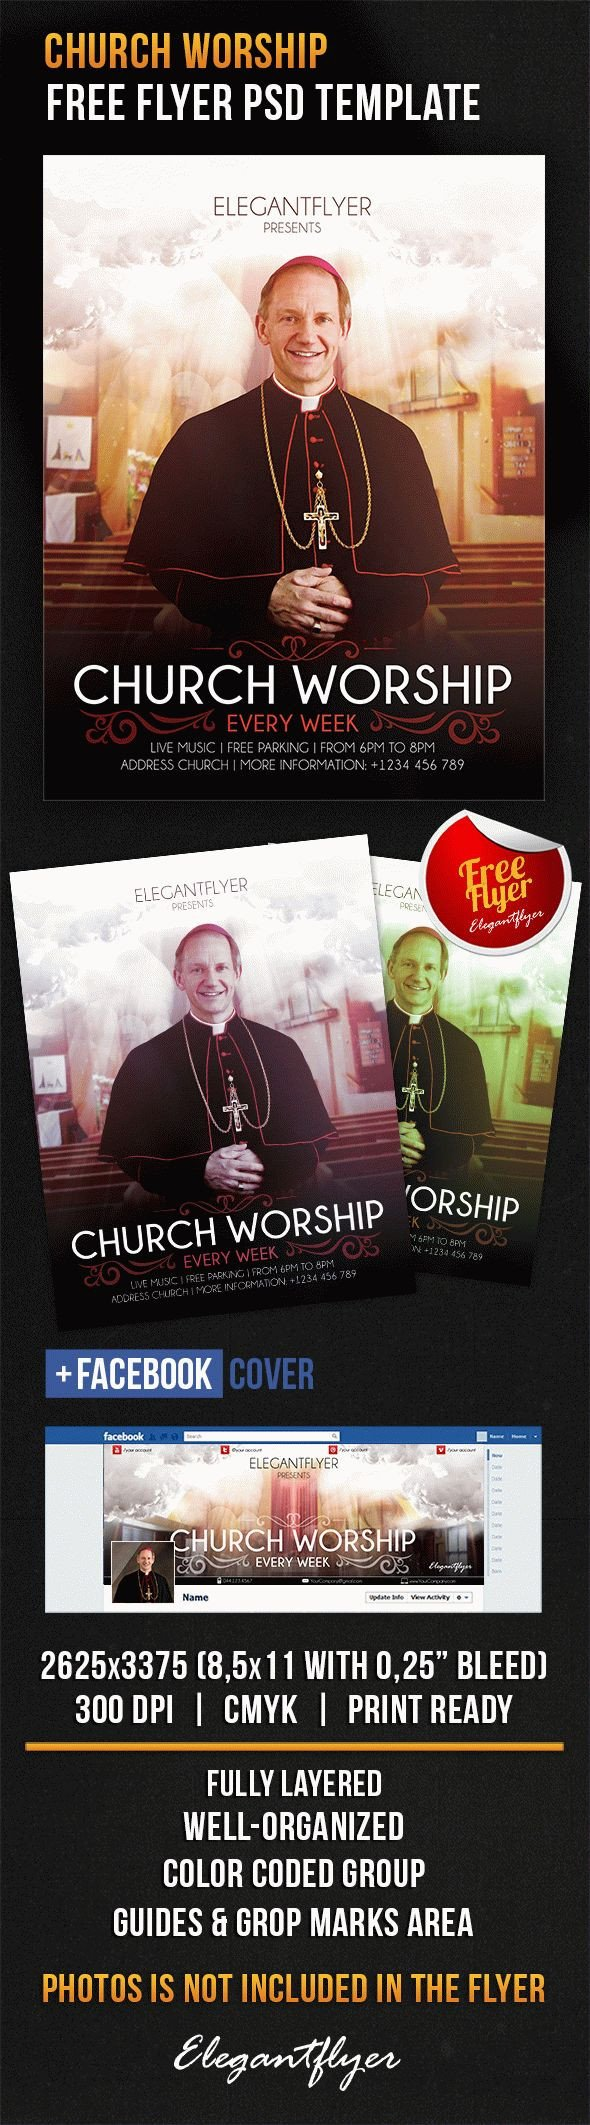 Free Church Flyer Templates Photoshop Free Shop Flyer Template Church Worship